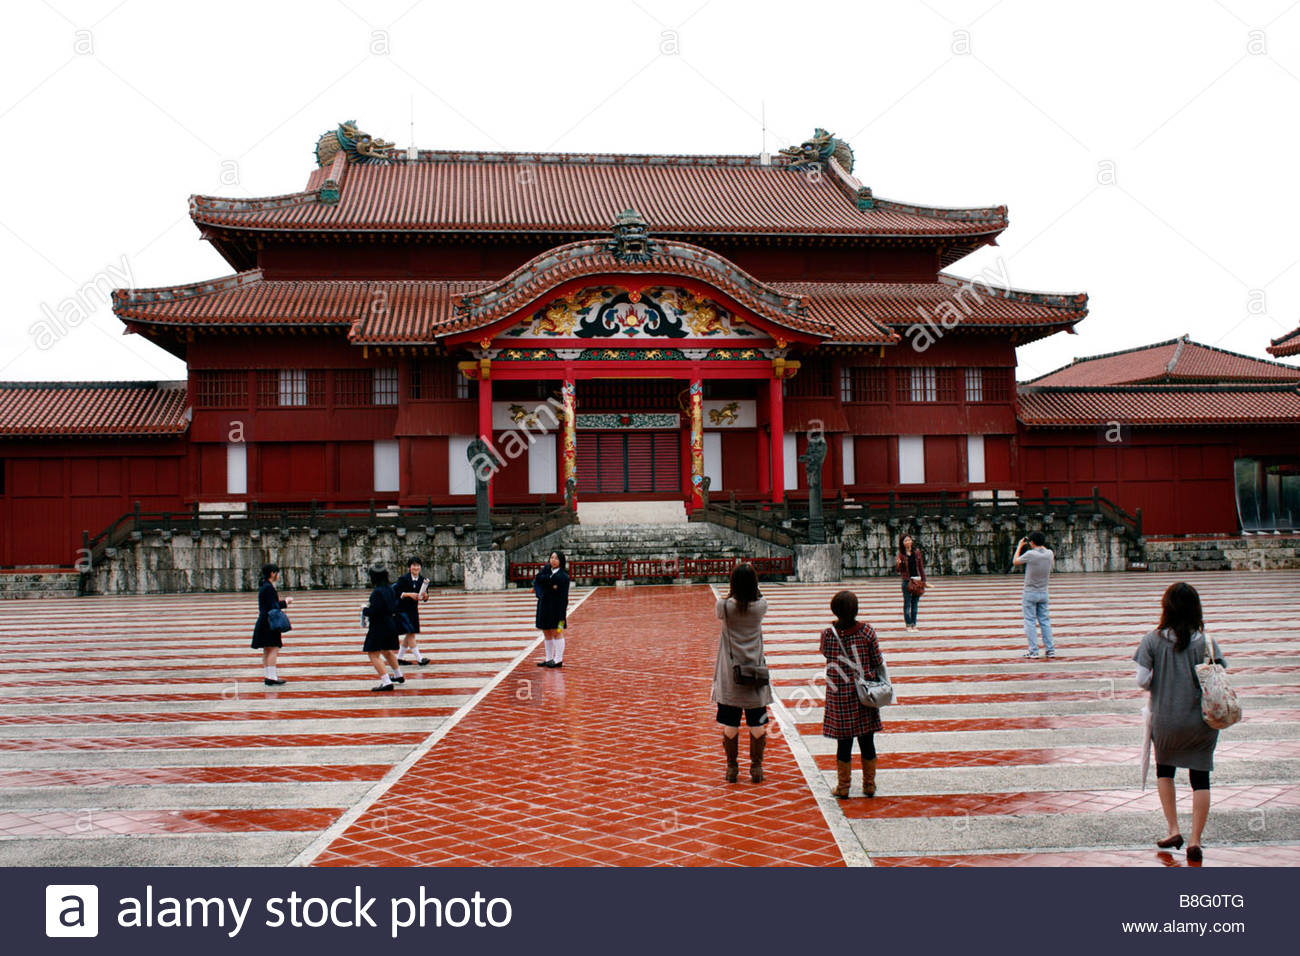 Tourists in the courtyard in front of the Palace of the Ryukyu Kings, Shurijo Castle Park, Okinawa Japan - Stock Image